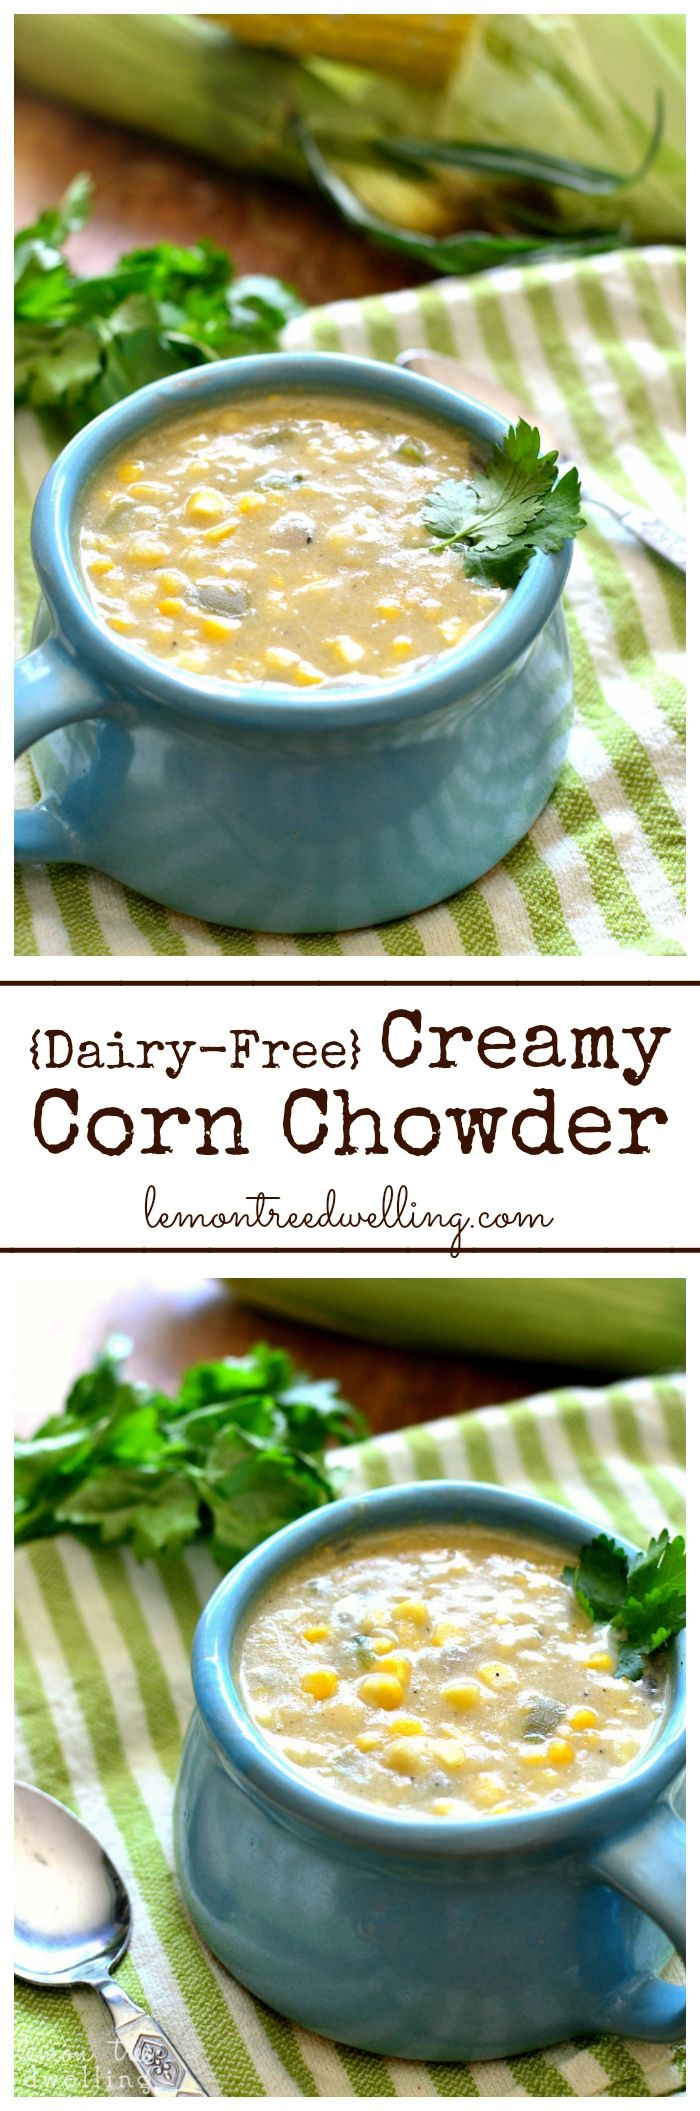 This Creamy Corn Chowder is hearty, delicious, and packed with sweet corn flavor.....and you'd never guess it's dairy-free!